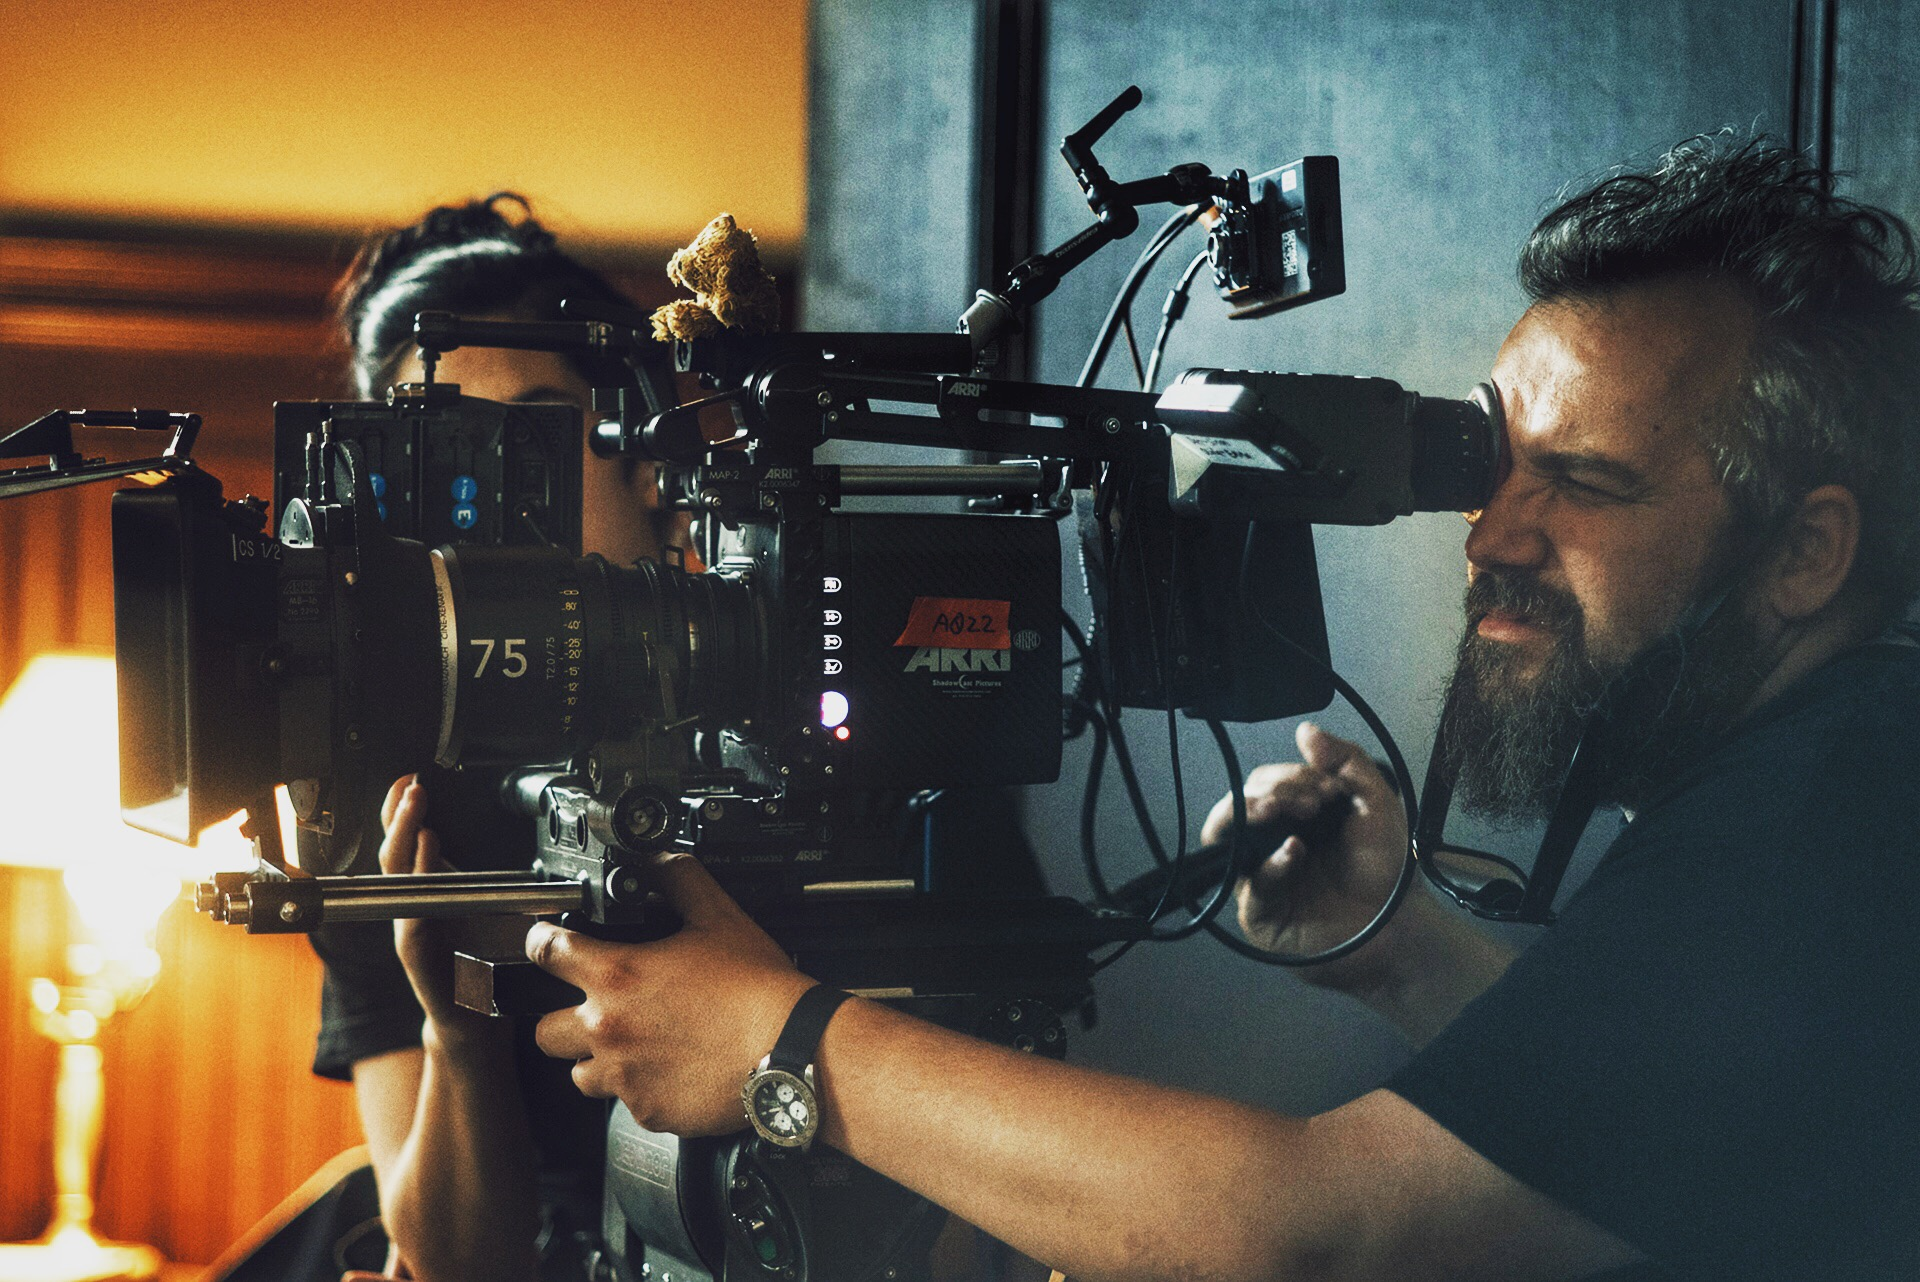 Pablo Diez, AEC. Cinematographer